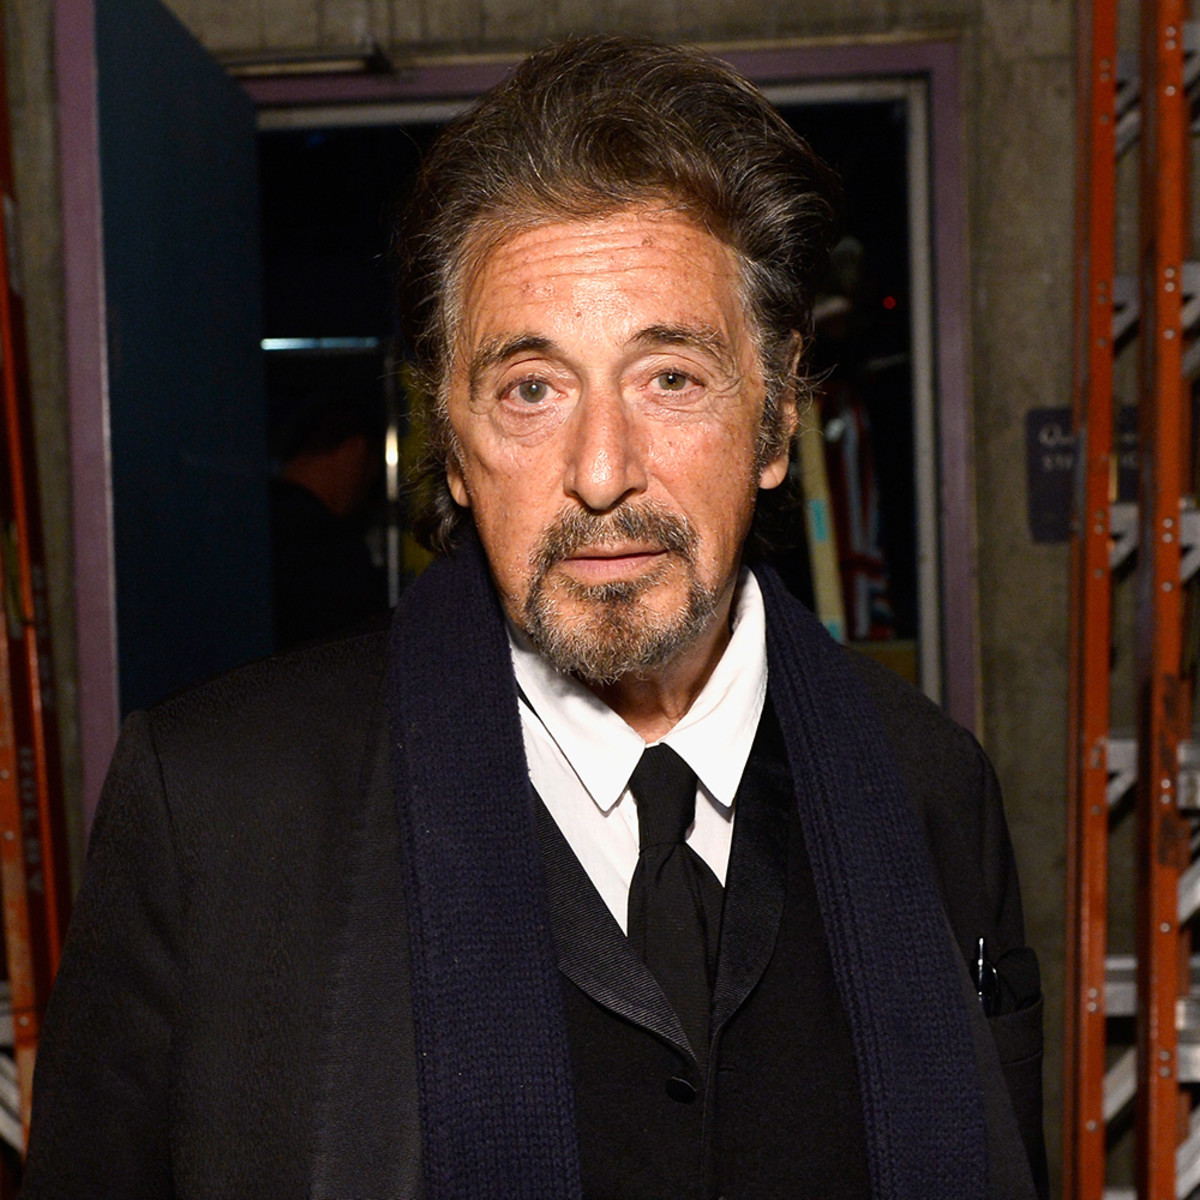 """Al Pacino's Rags To Riches Story's What """"Entitled"""" Star Kids Should Learn From"""